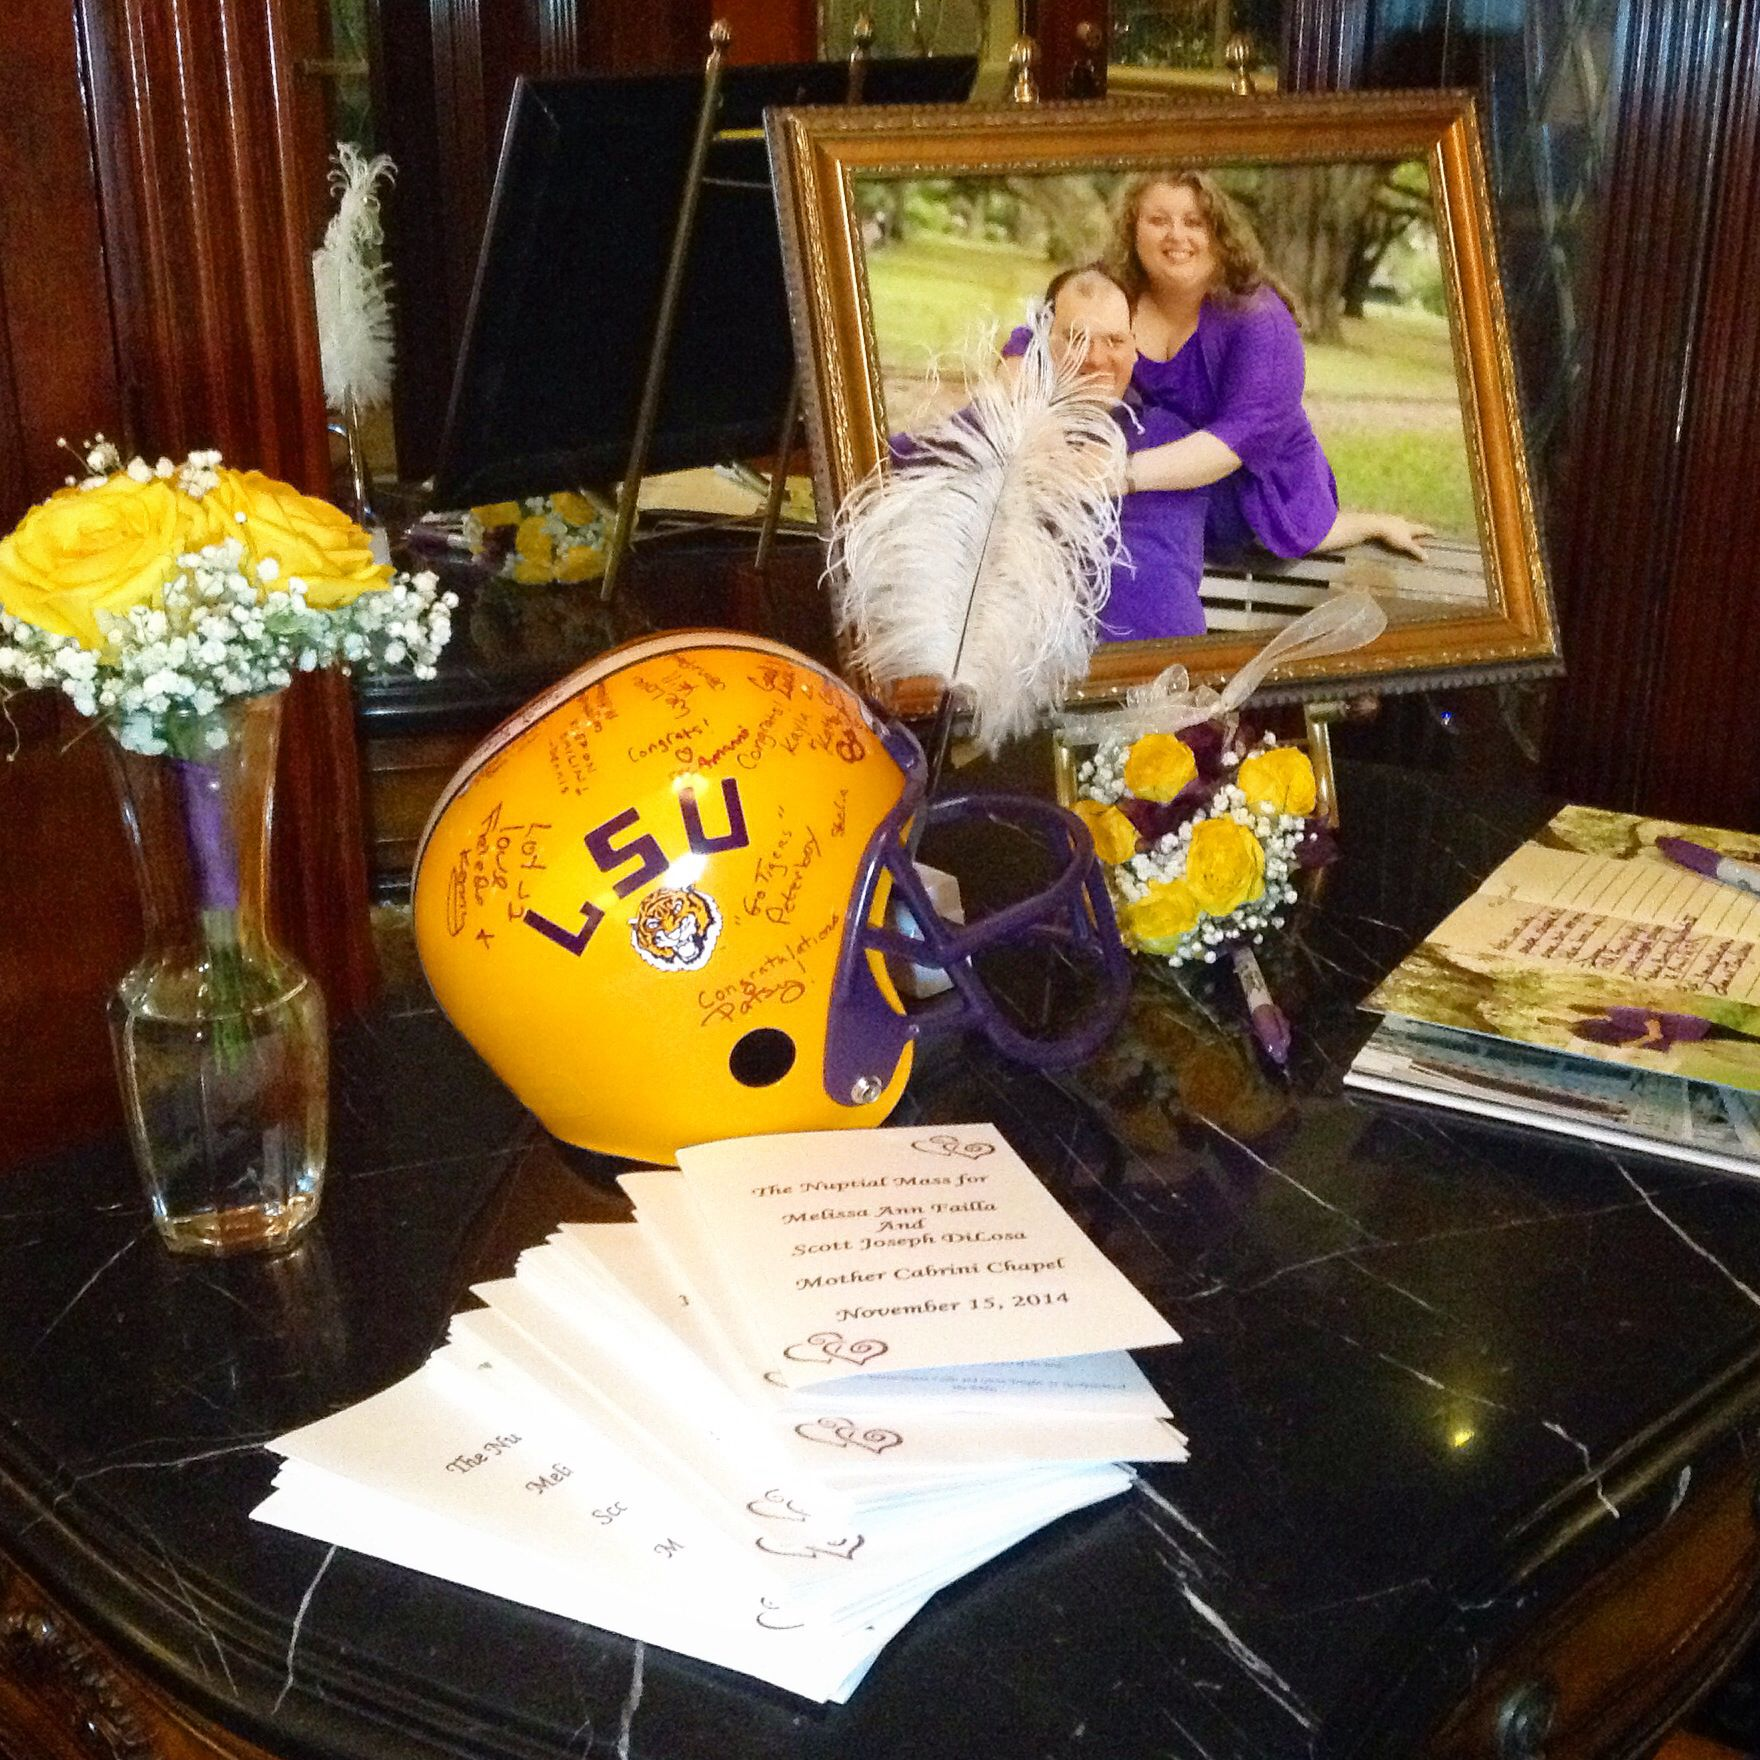 Party Halls Metairie: LOVE This Guest Book! Sign The LSU Helmet For The Bride